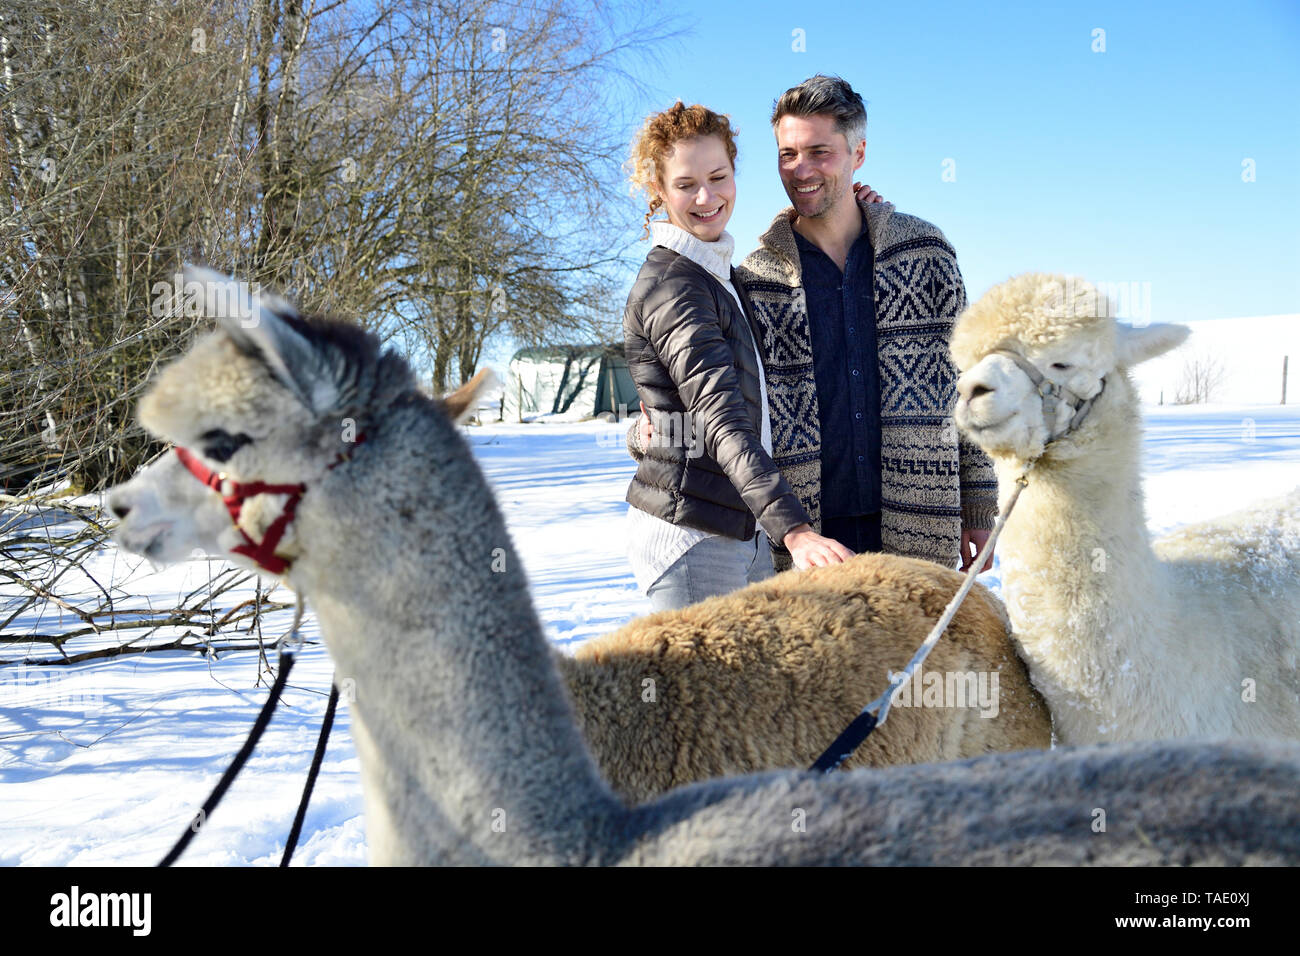 Happy couple with alpacas on a field in winter - Stock Image